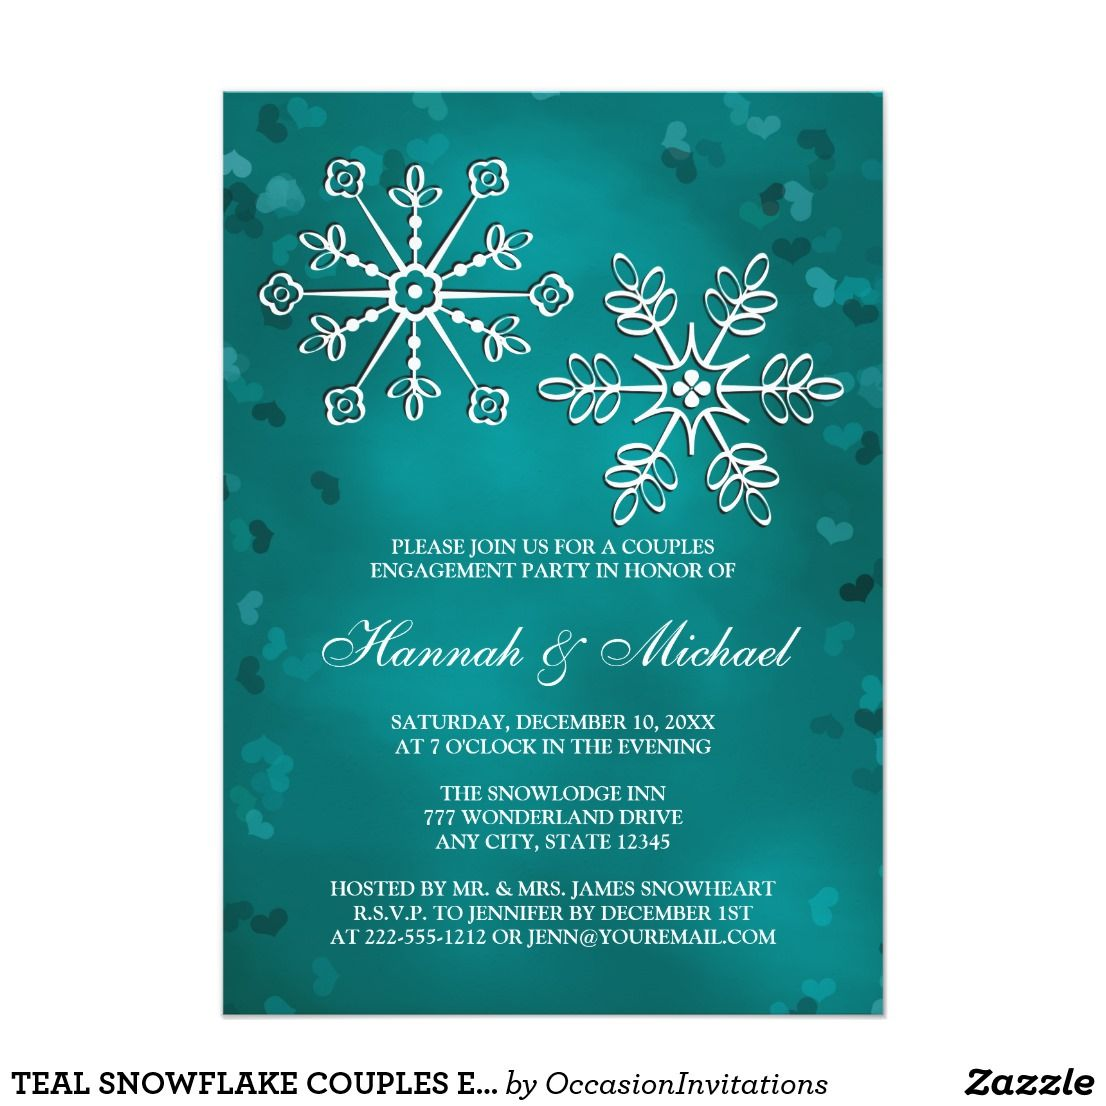 Teal Snowflake Couples Engagement Party Card Engagement Party